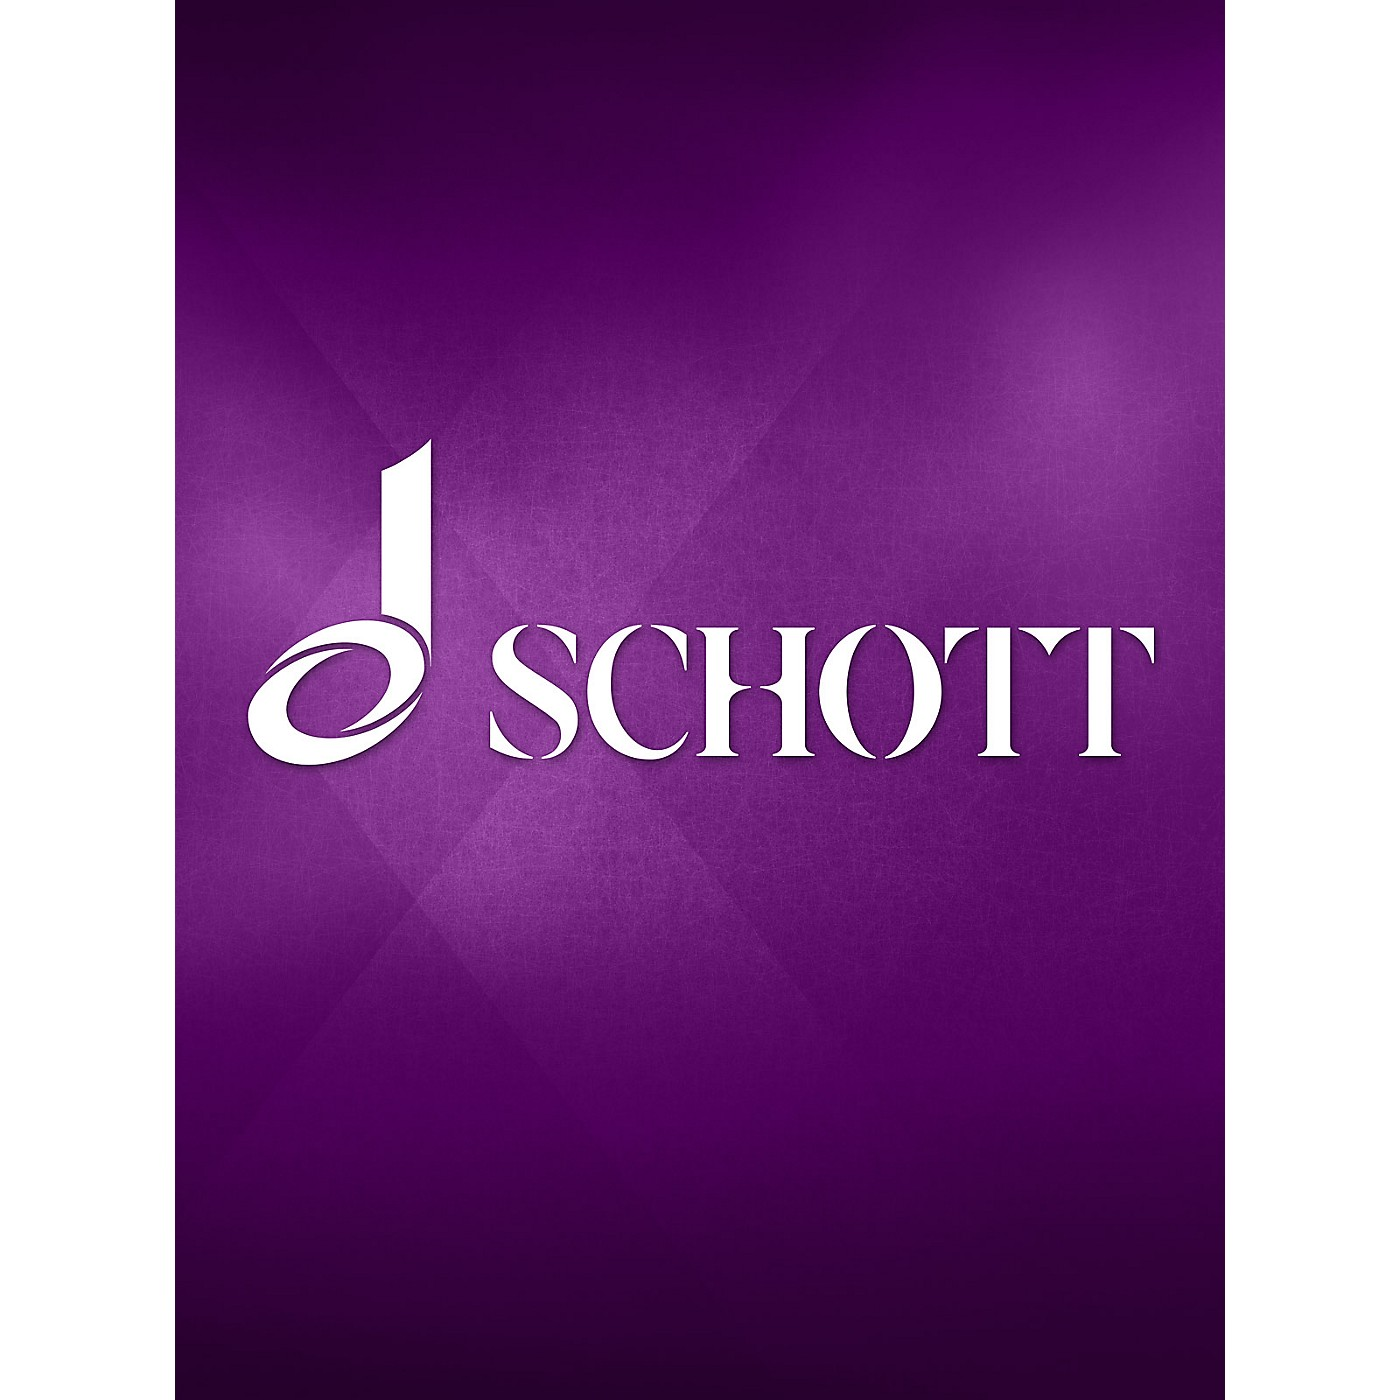 Mobart Music Publications/Schott Helicon Sonnet to Orpheus No. 9 (SATB a cappella) SATB a cappella Composed by Ben Weber thumbnail